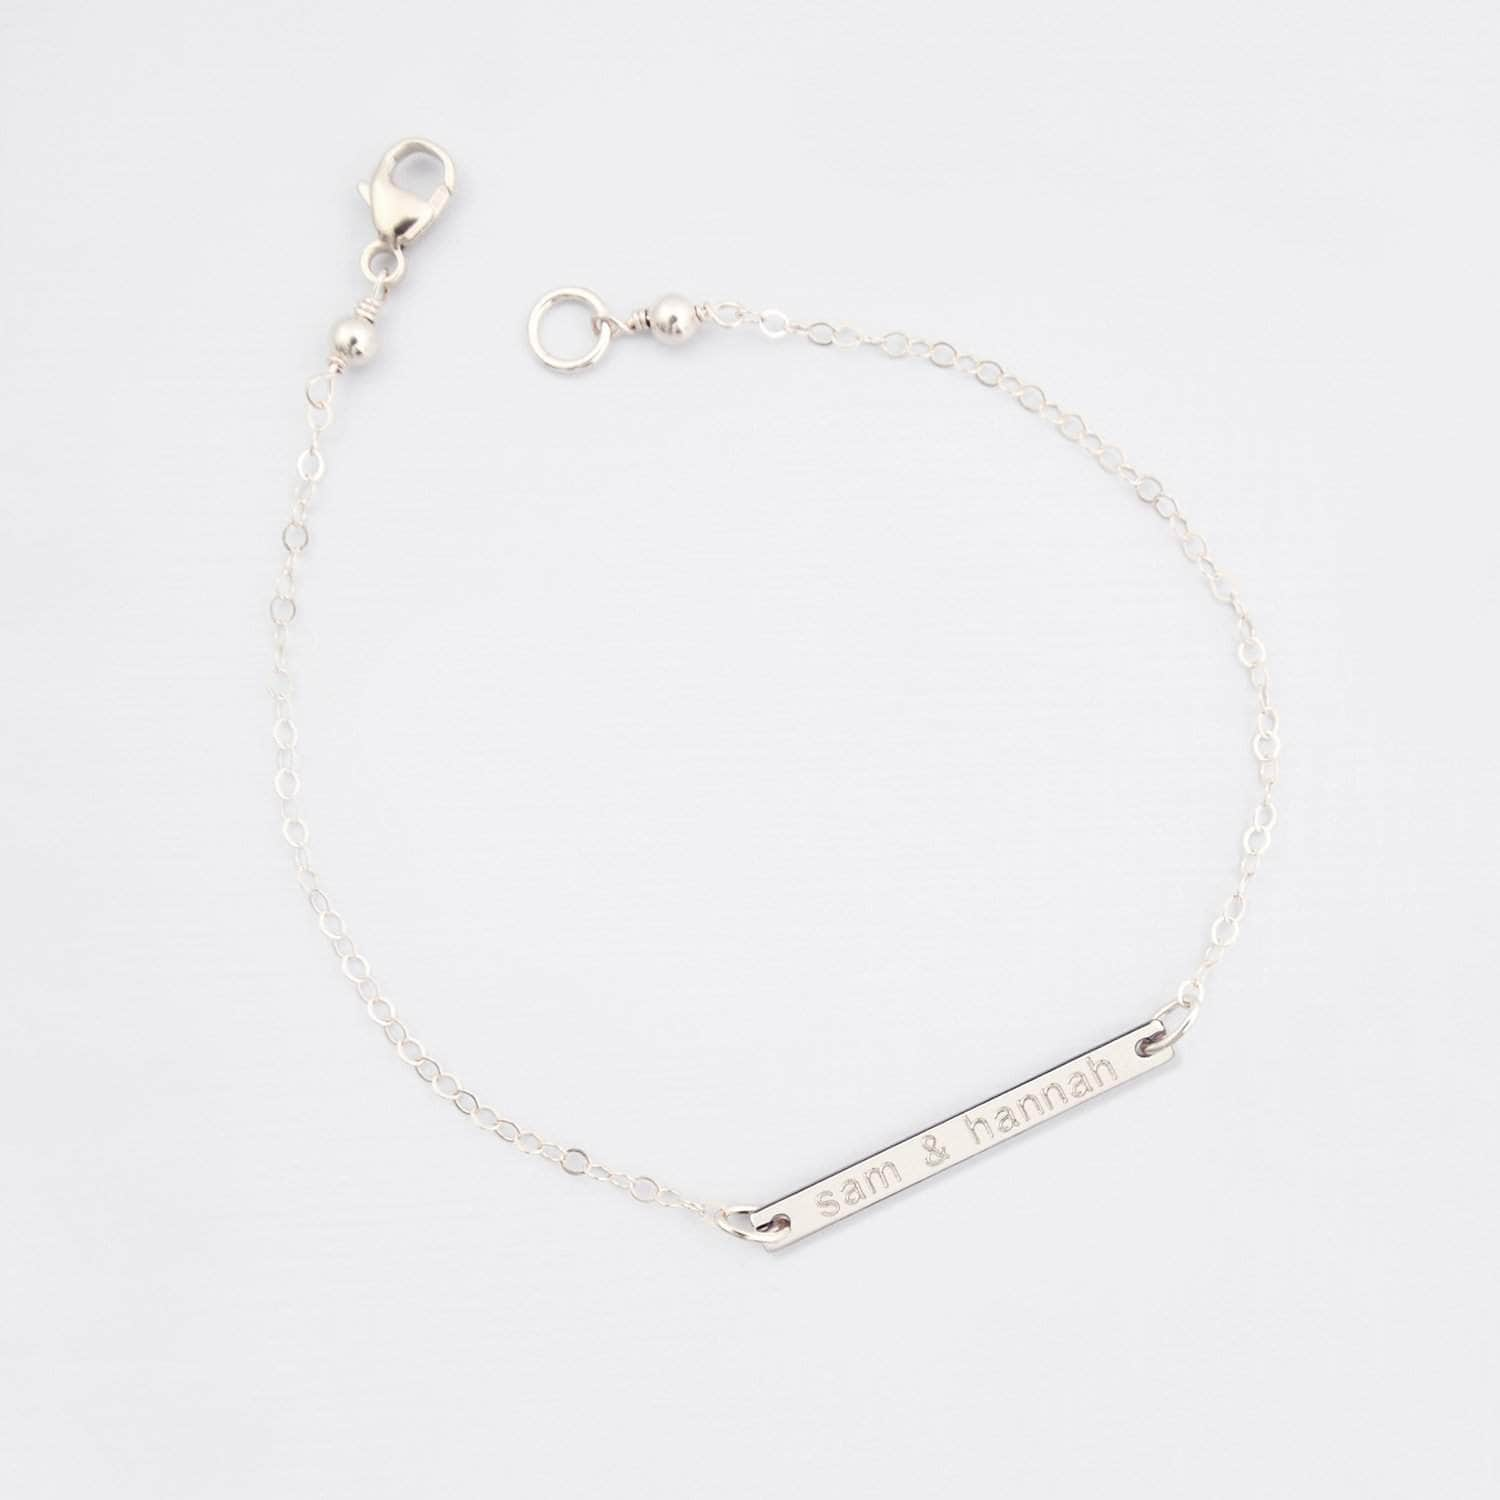 Wedding Bracelet Personalised Bar Bridal Bracelet - 'Otalie'